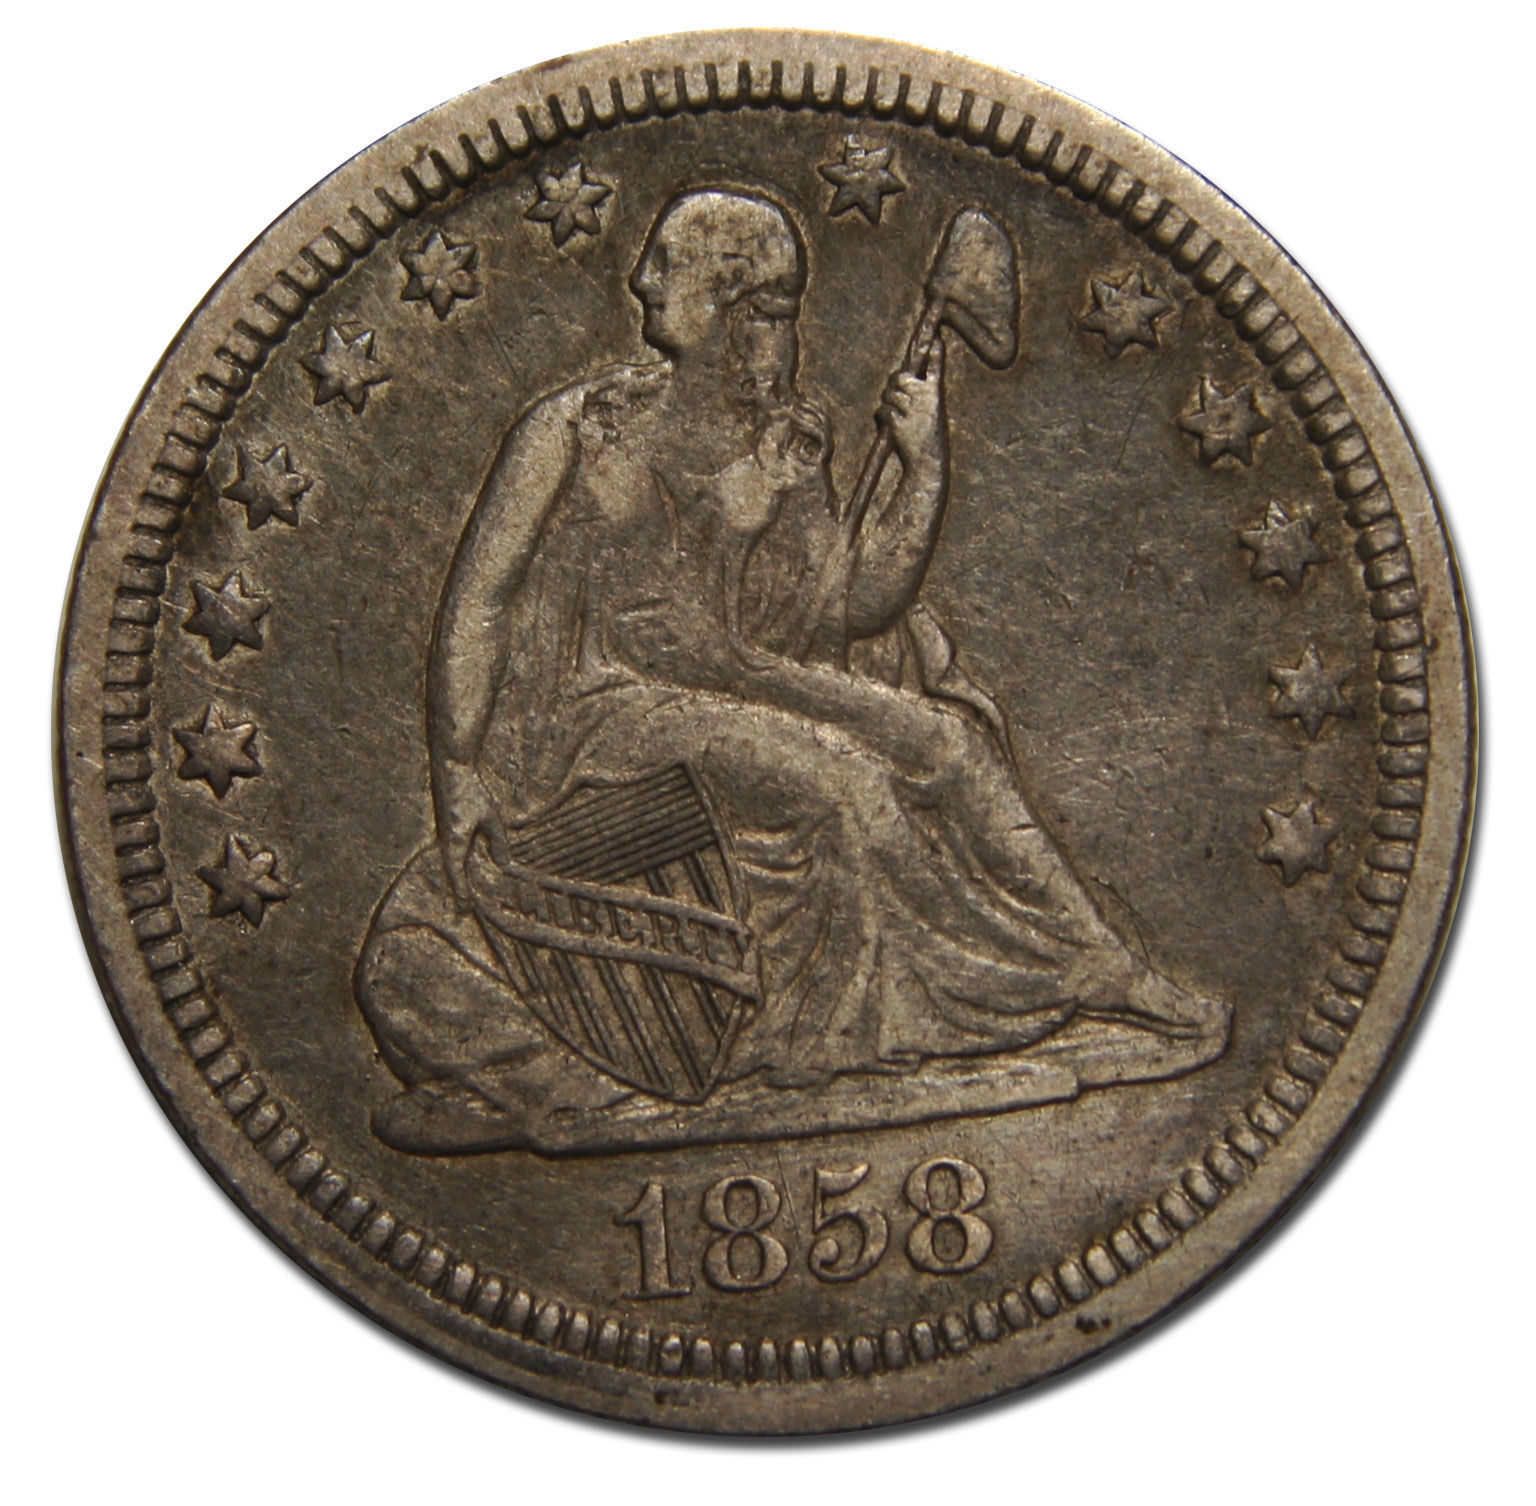 1858 Seated Liberty Quarter 25¢ Coin Lot# MZ 3548